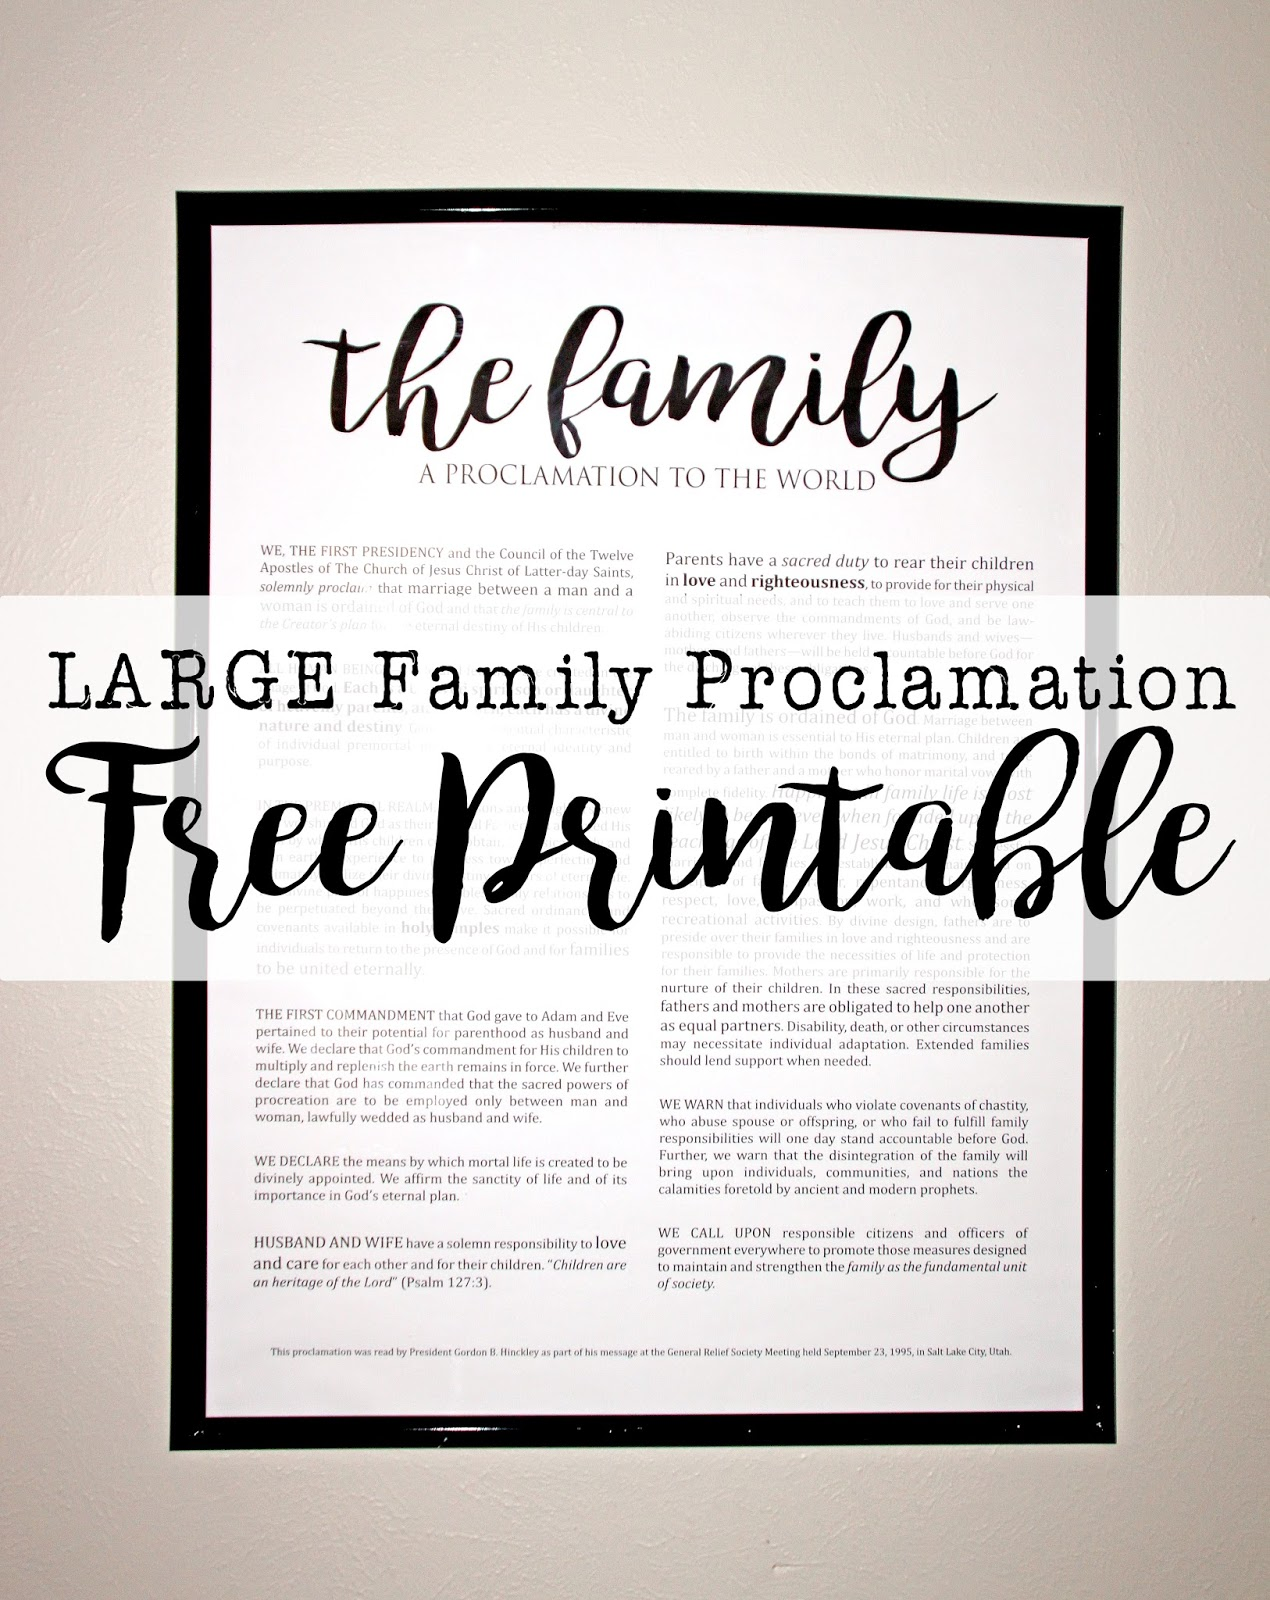 picture regarding The Family a Proclamation to the World Free Printable identify mimiberry creations: Corridor Decor that Provides Centuries